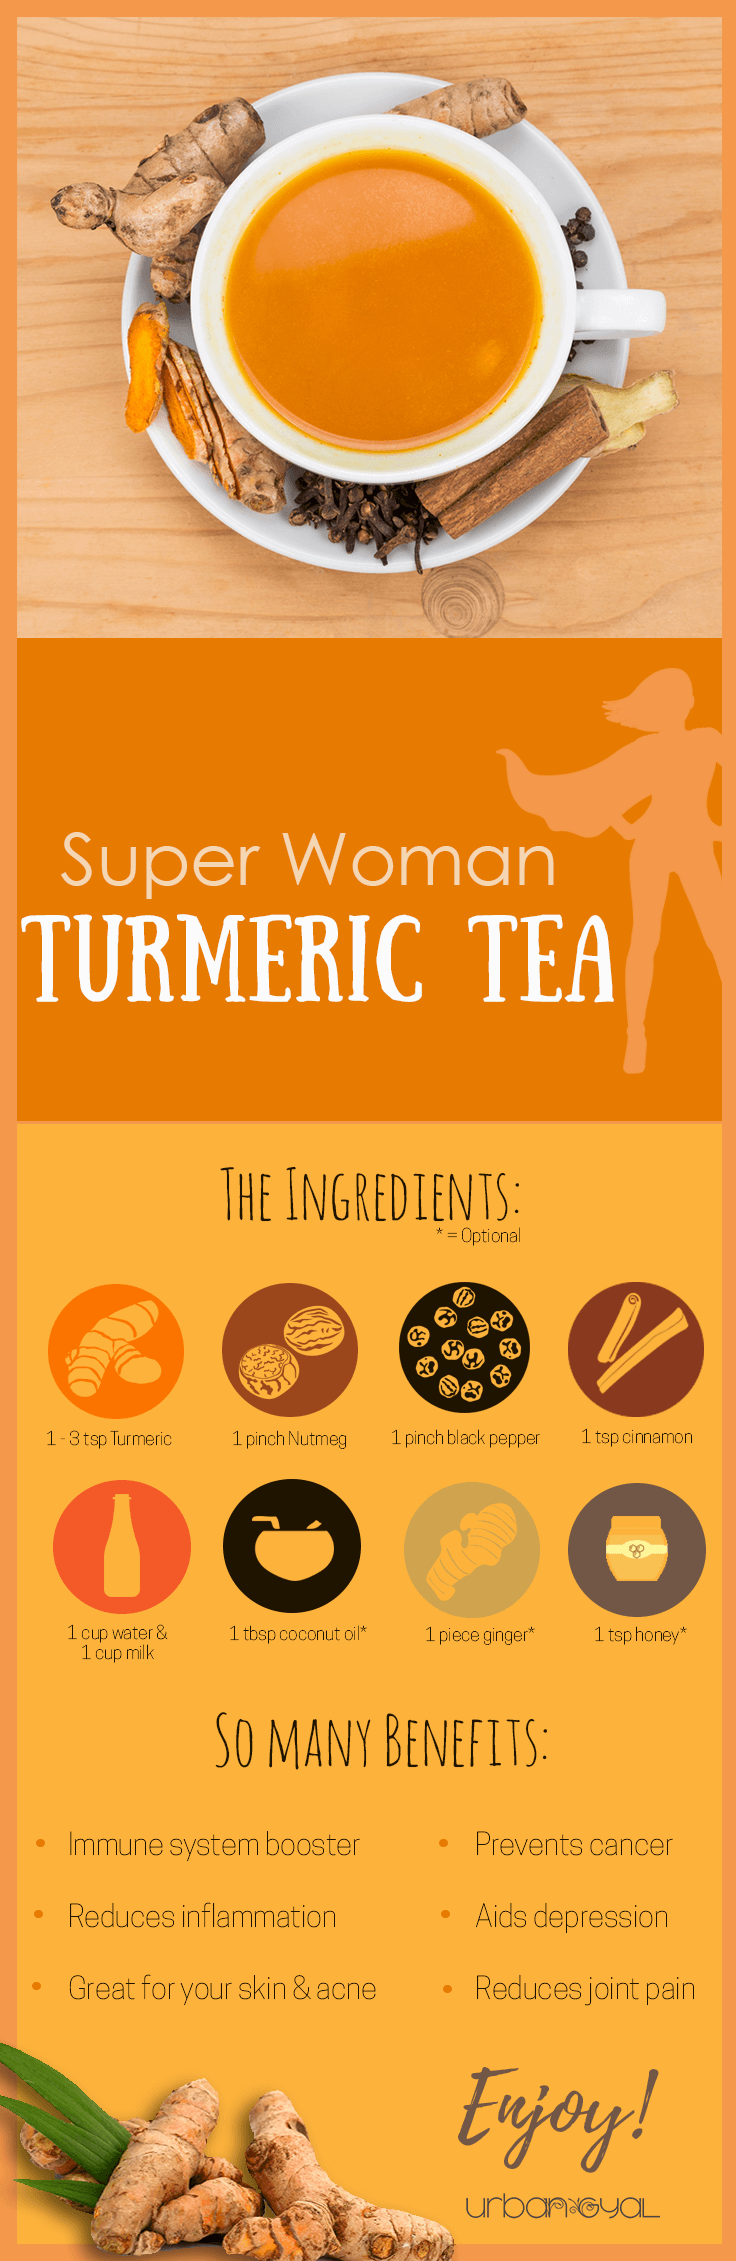 Super Woman Turmeric Tea